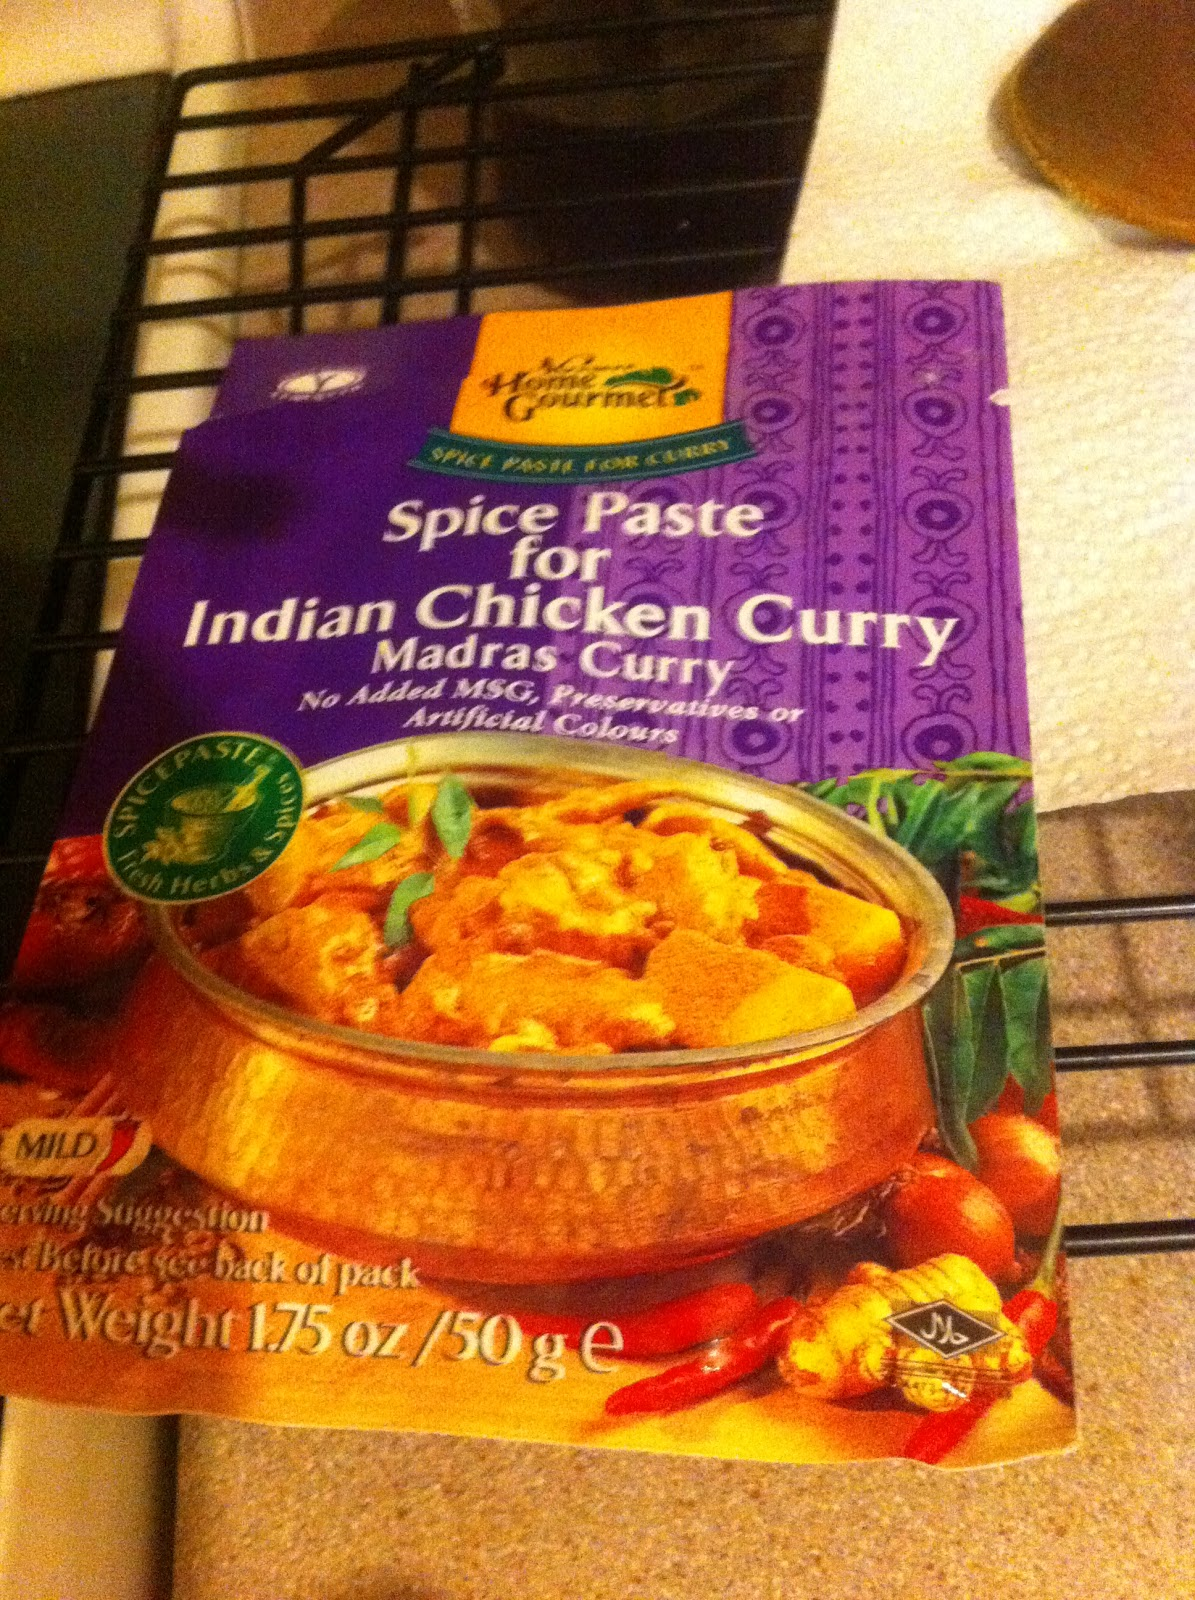 also picked up a packet of indian curry paste